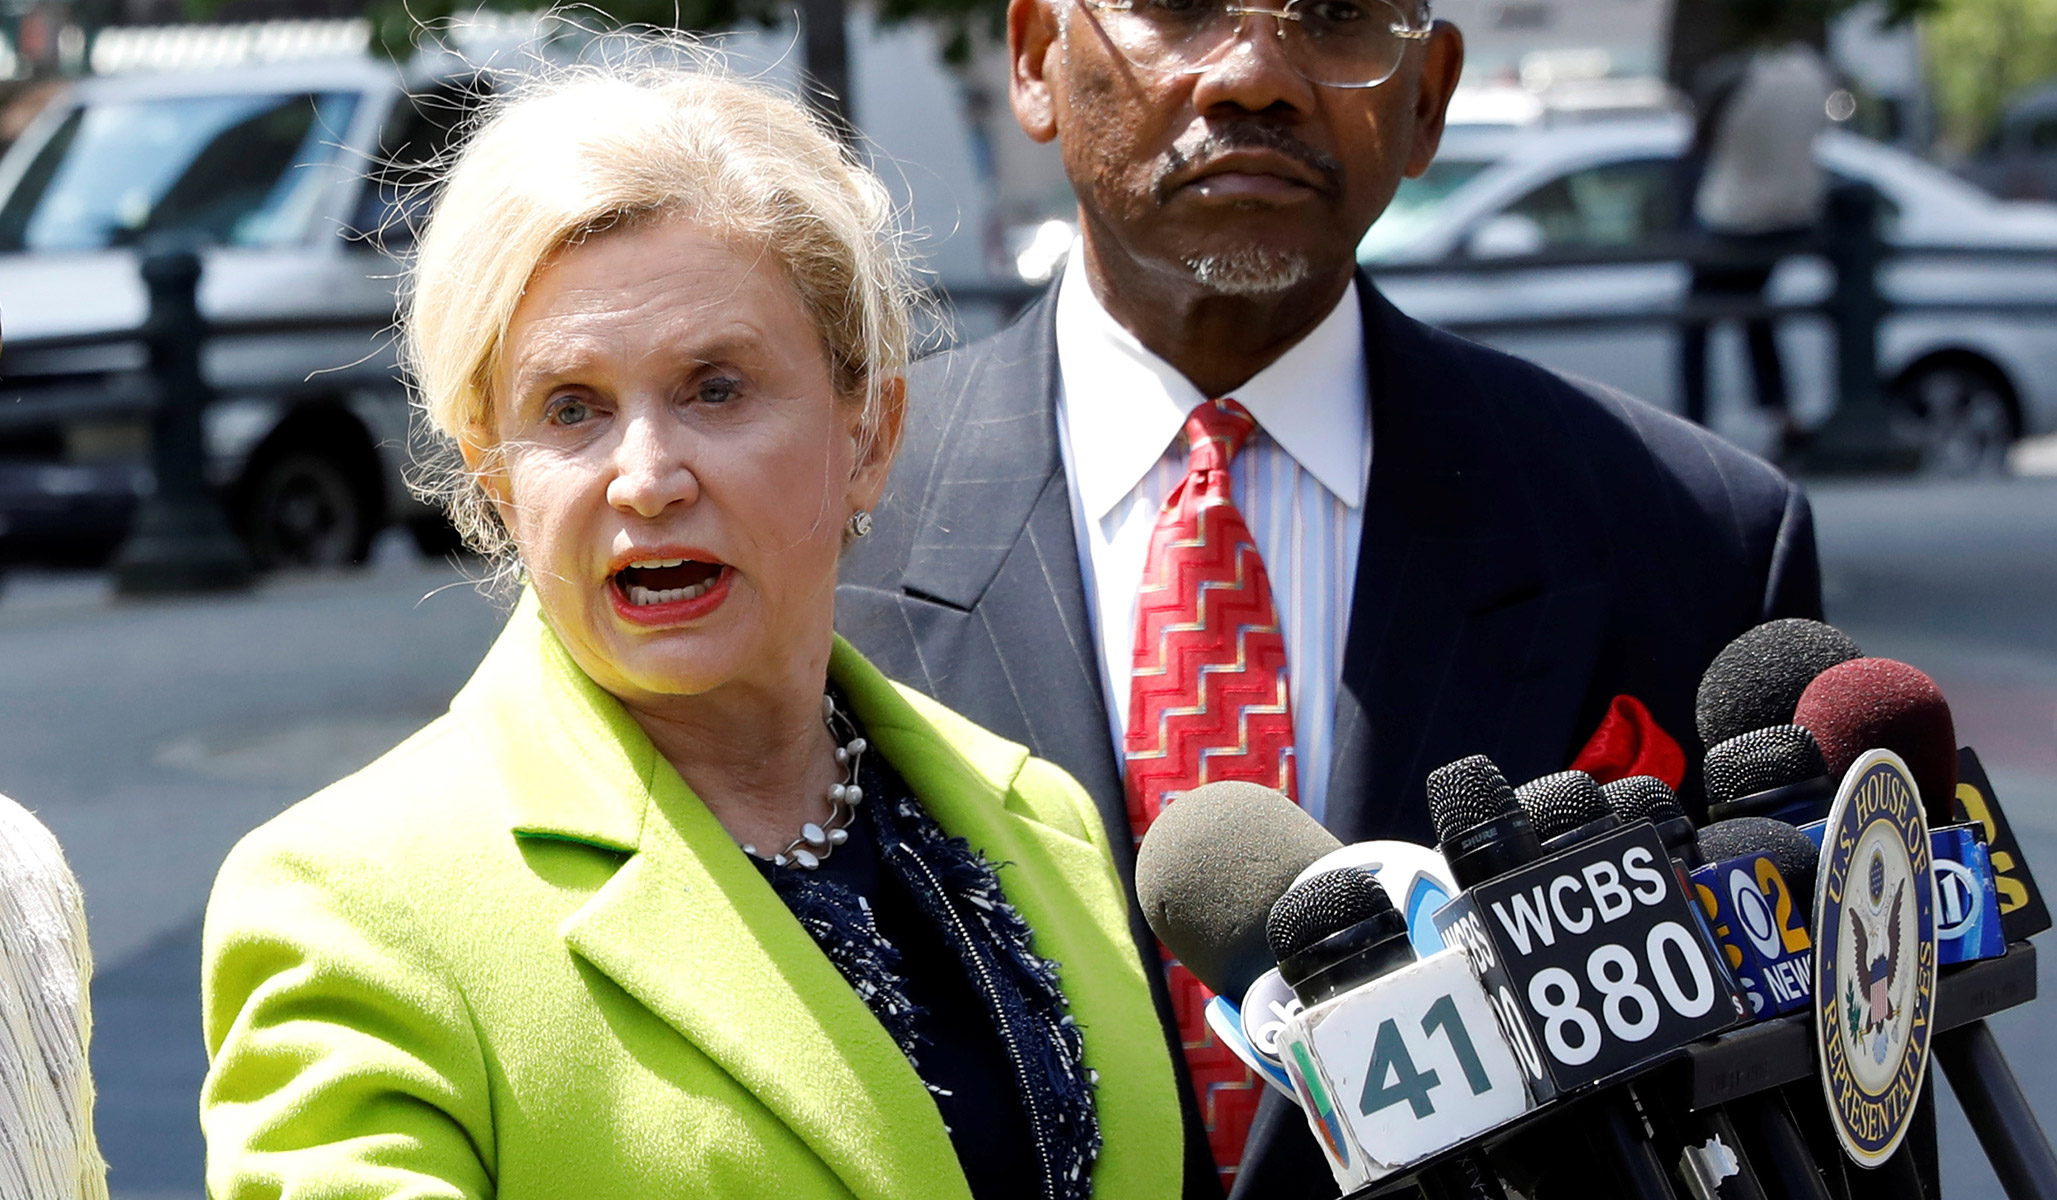 Rep. Carolyn Maloney Wins House Oversight Committee Chairmanship